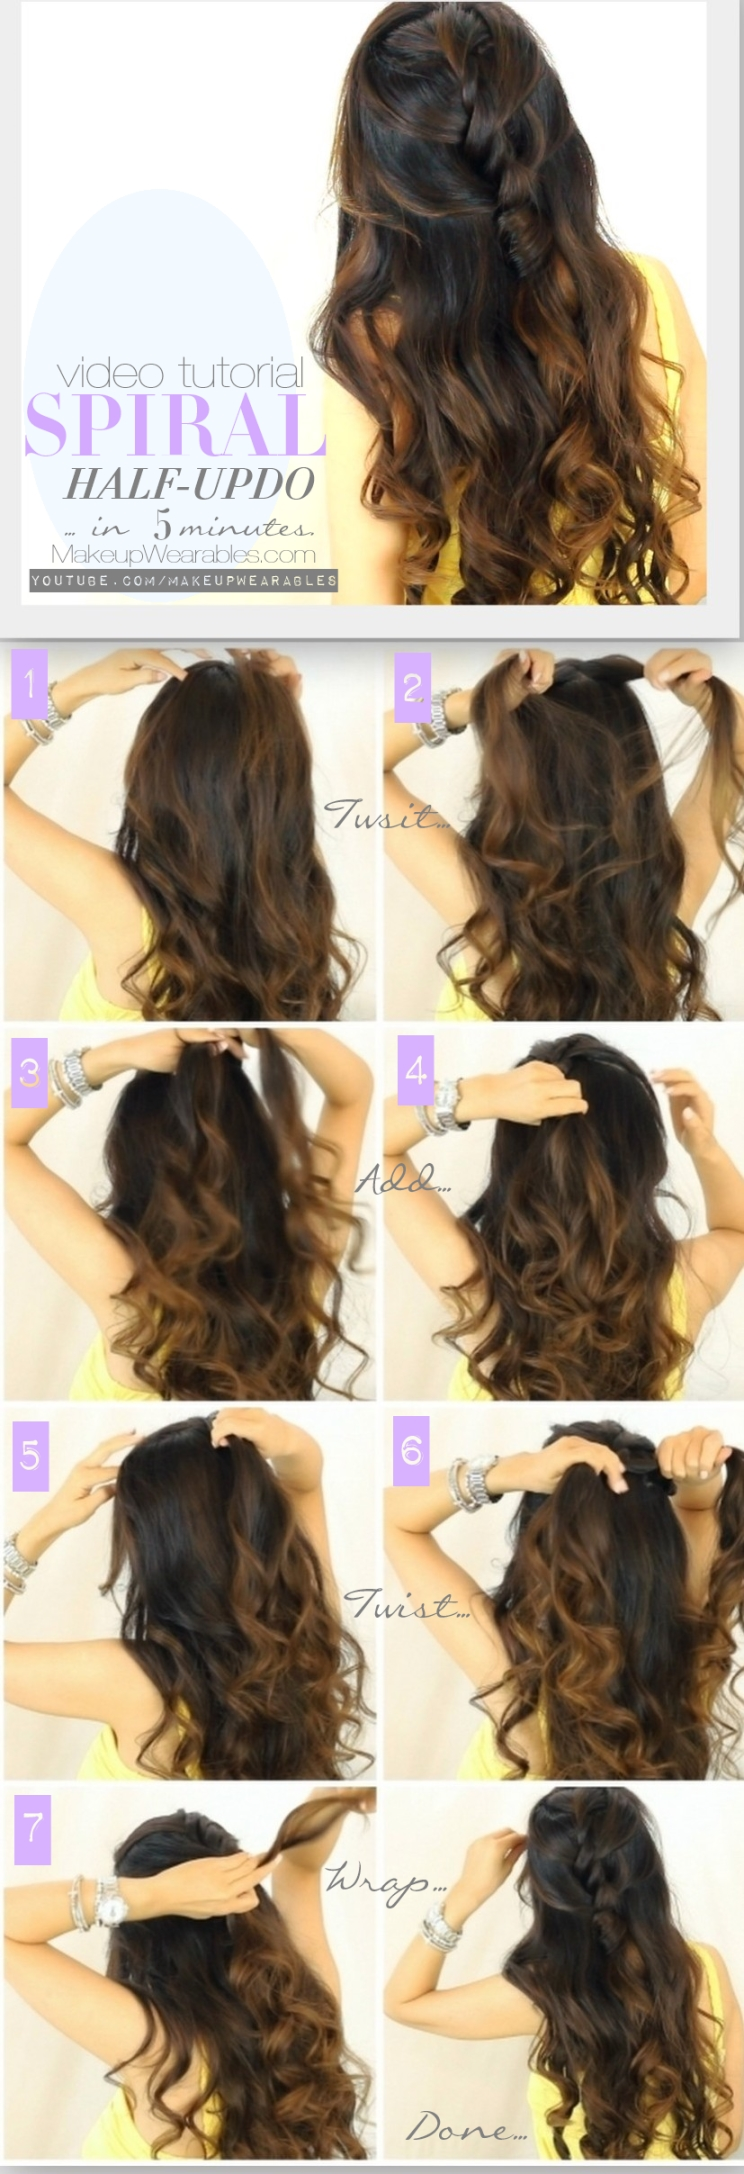 13 half up half down hair tutorials solutioingenieria